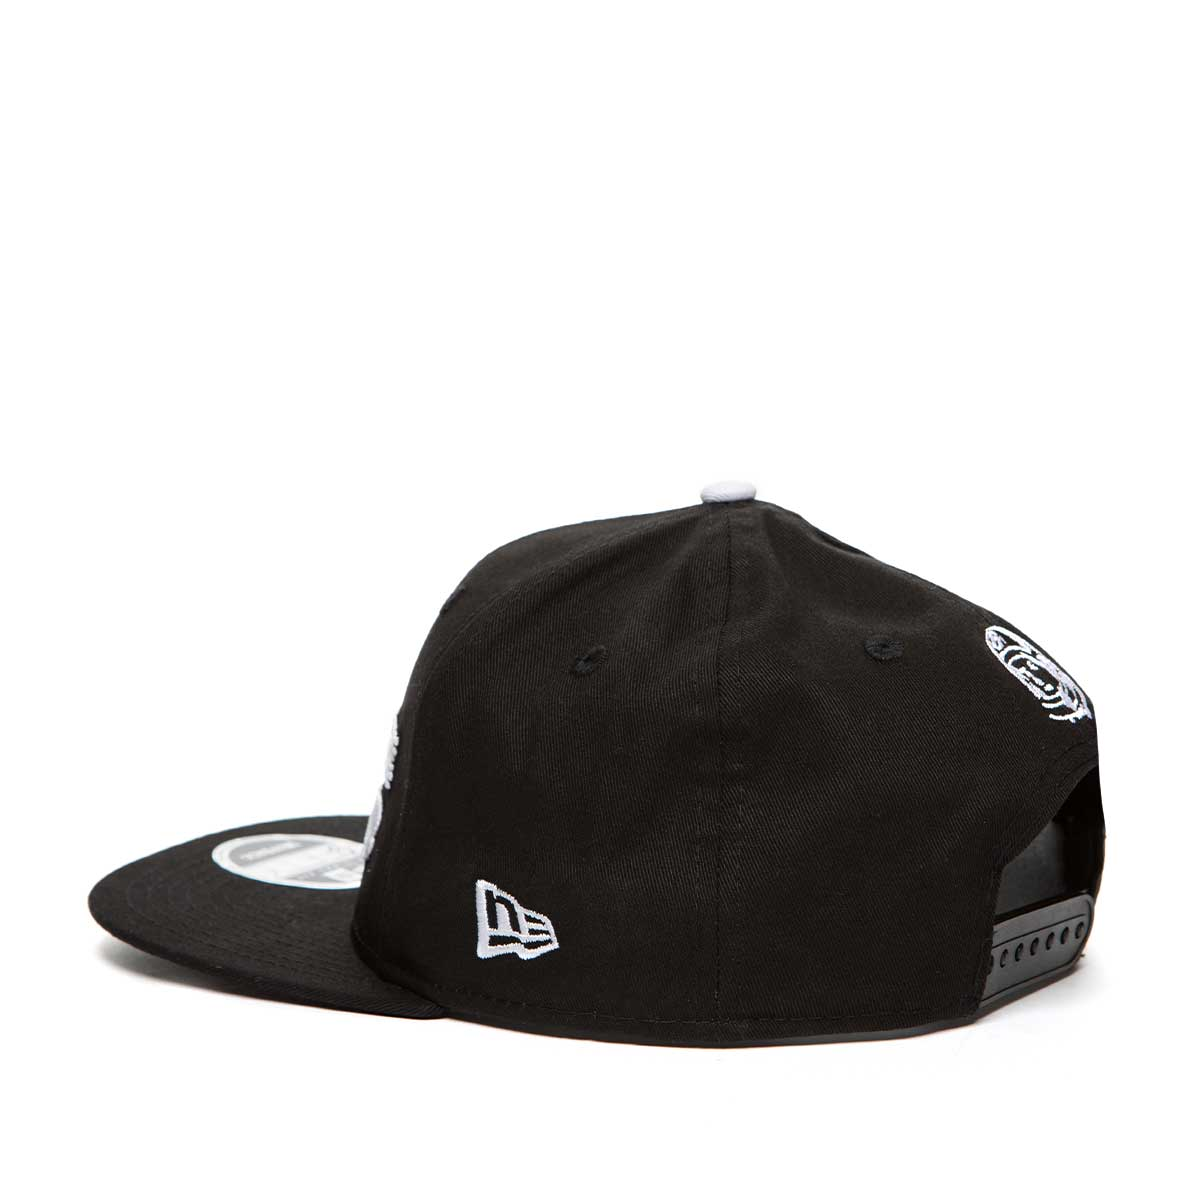 Billionaire Boys Club & Ice Cream Boys Club Snapback